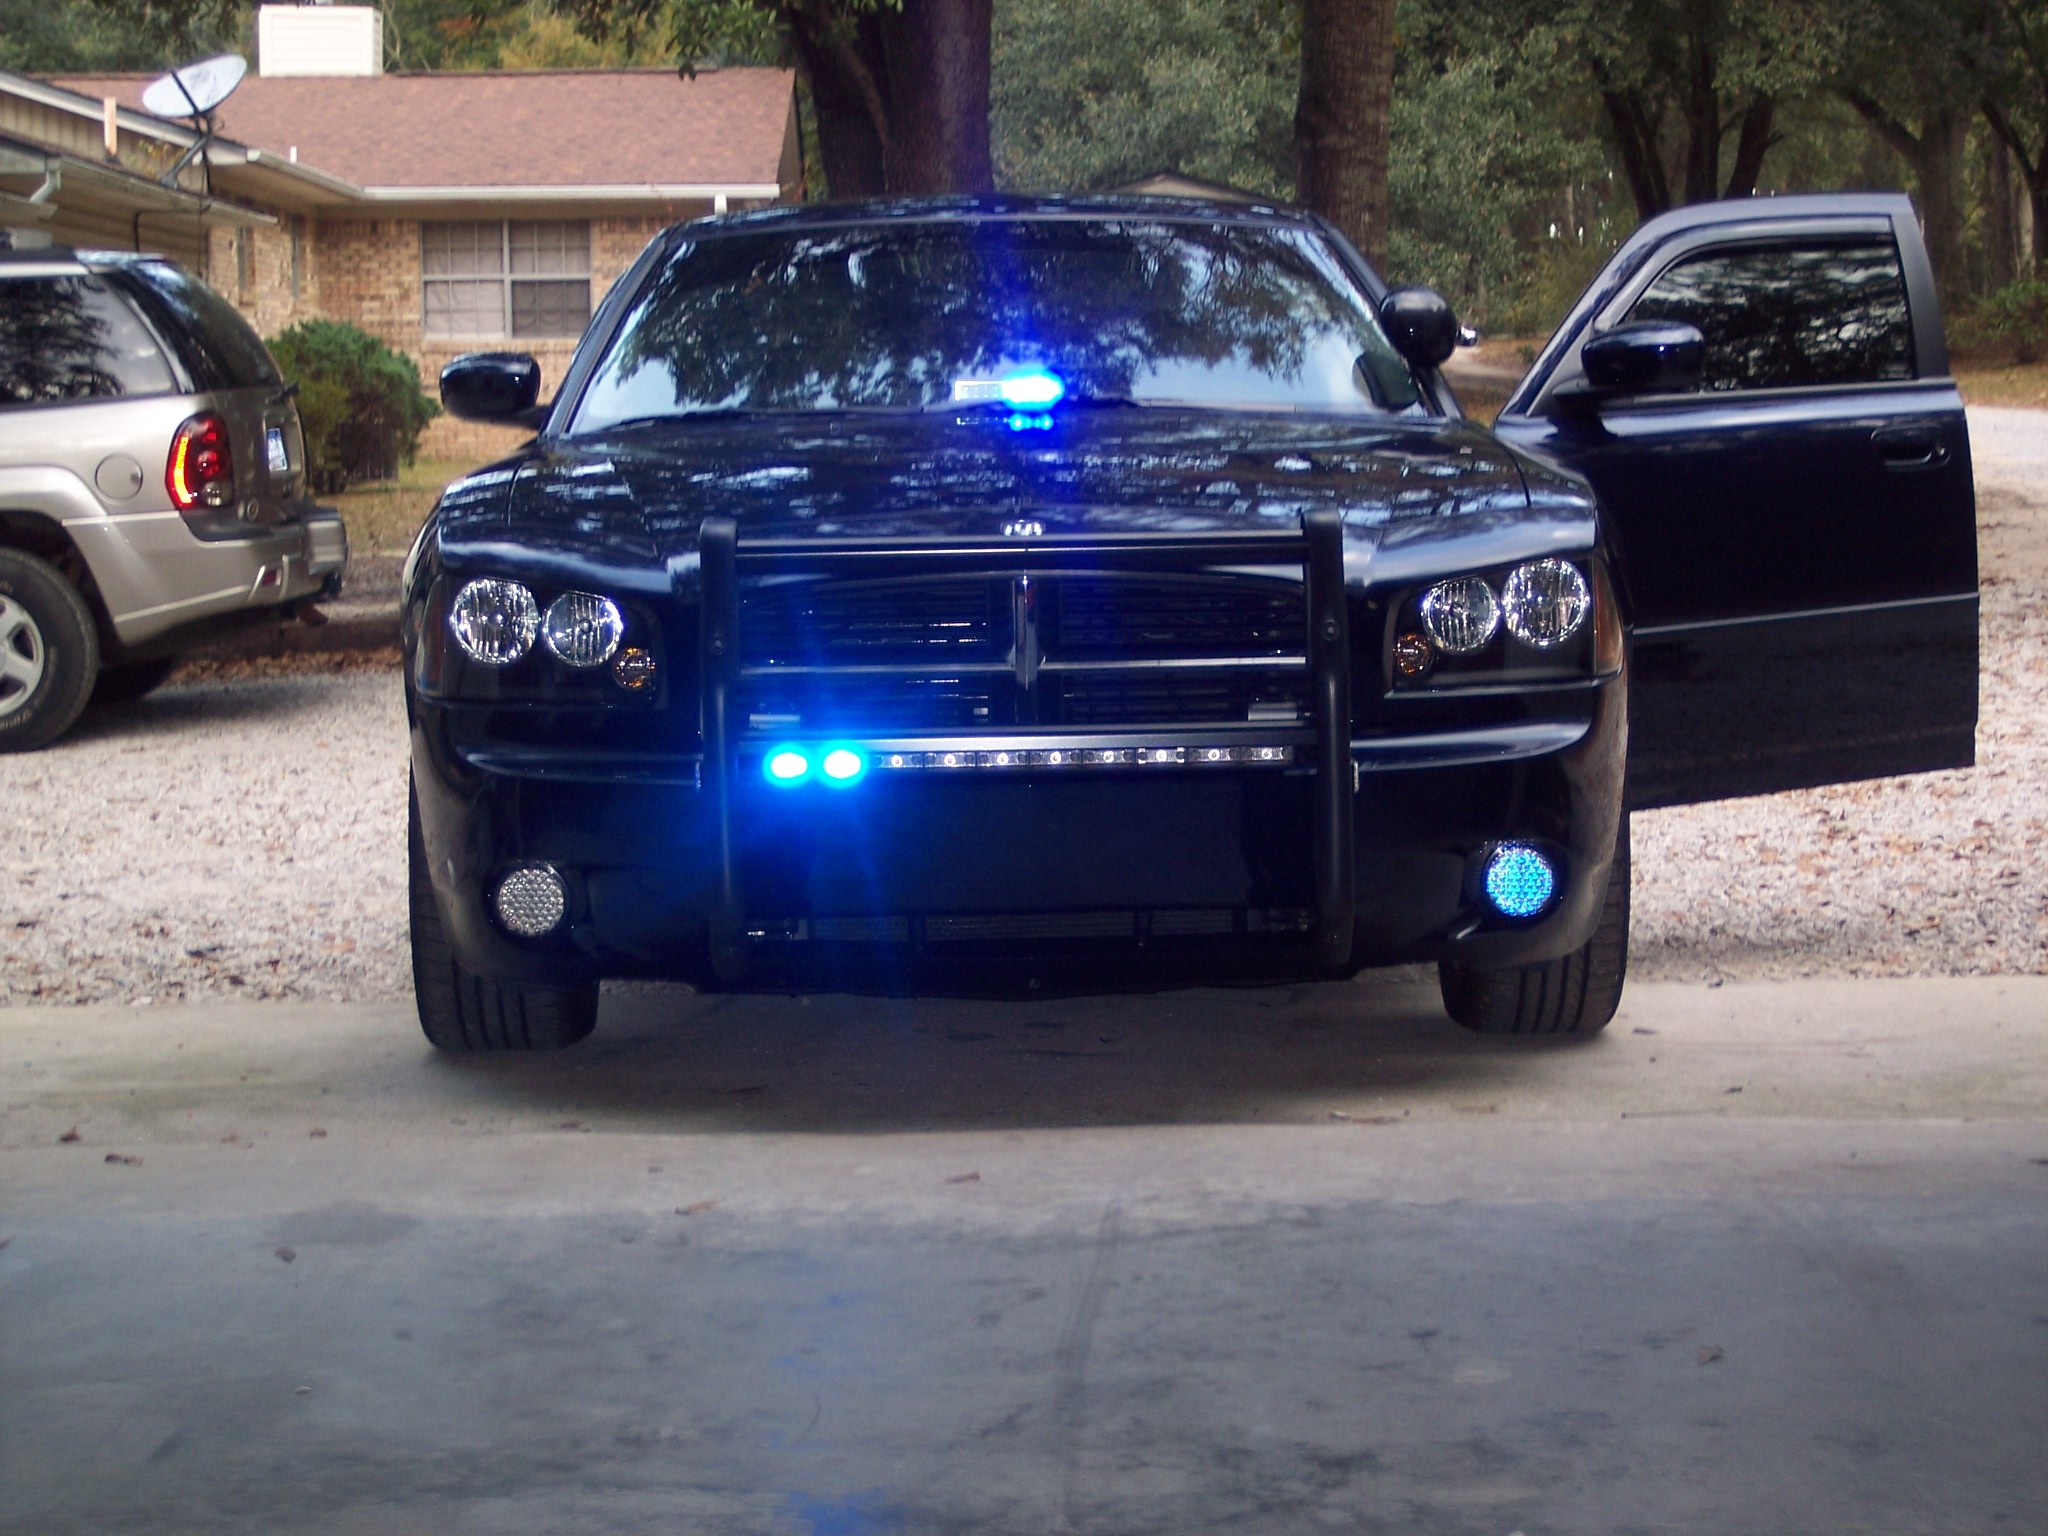 vehicles police Wallpaper Backgrounds